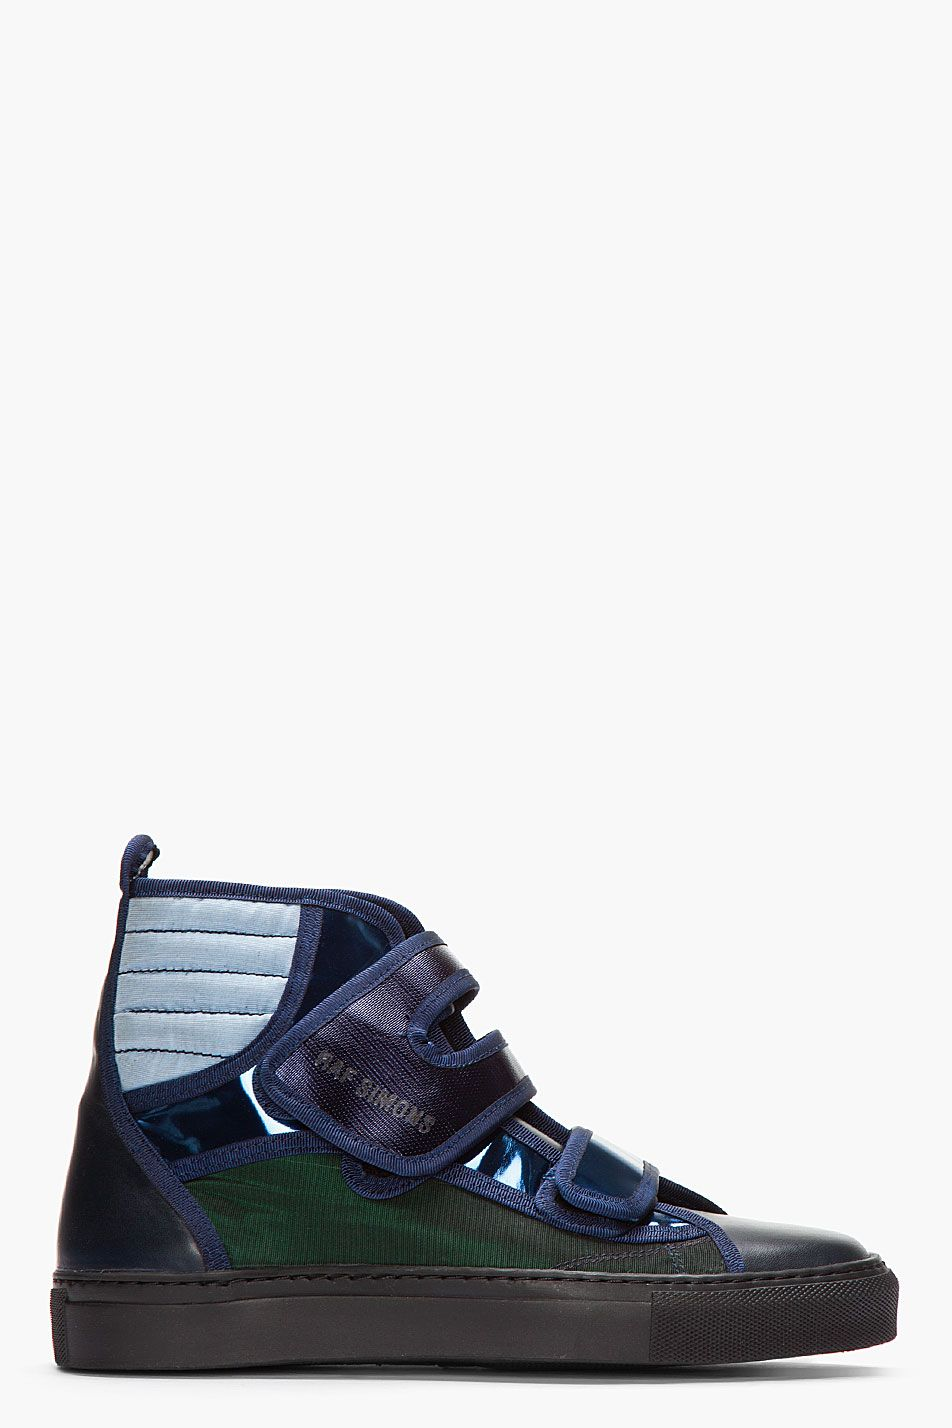 ecead5e3a627 Raf Simons Blue And Green Metallic Velcro High-Tops. Mens Trainers